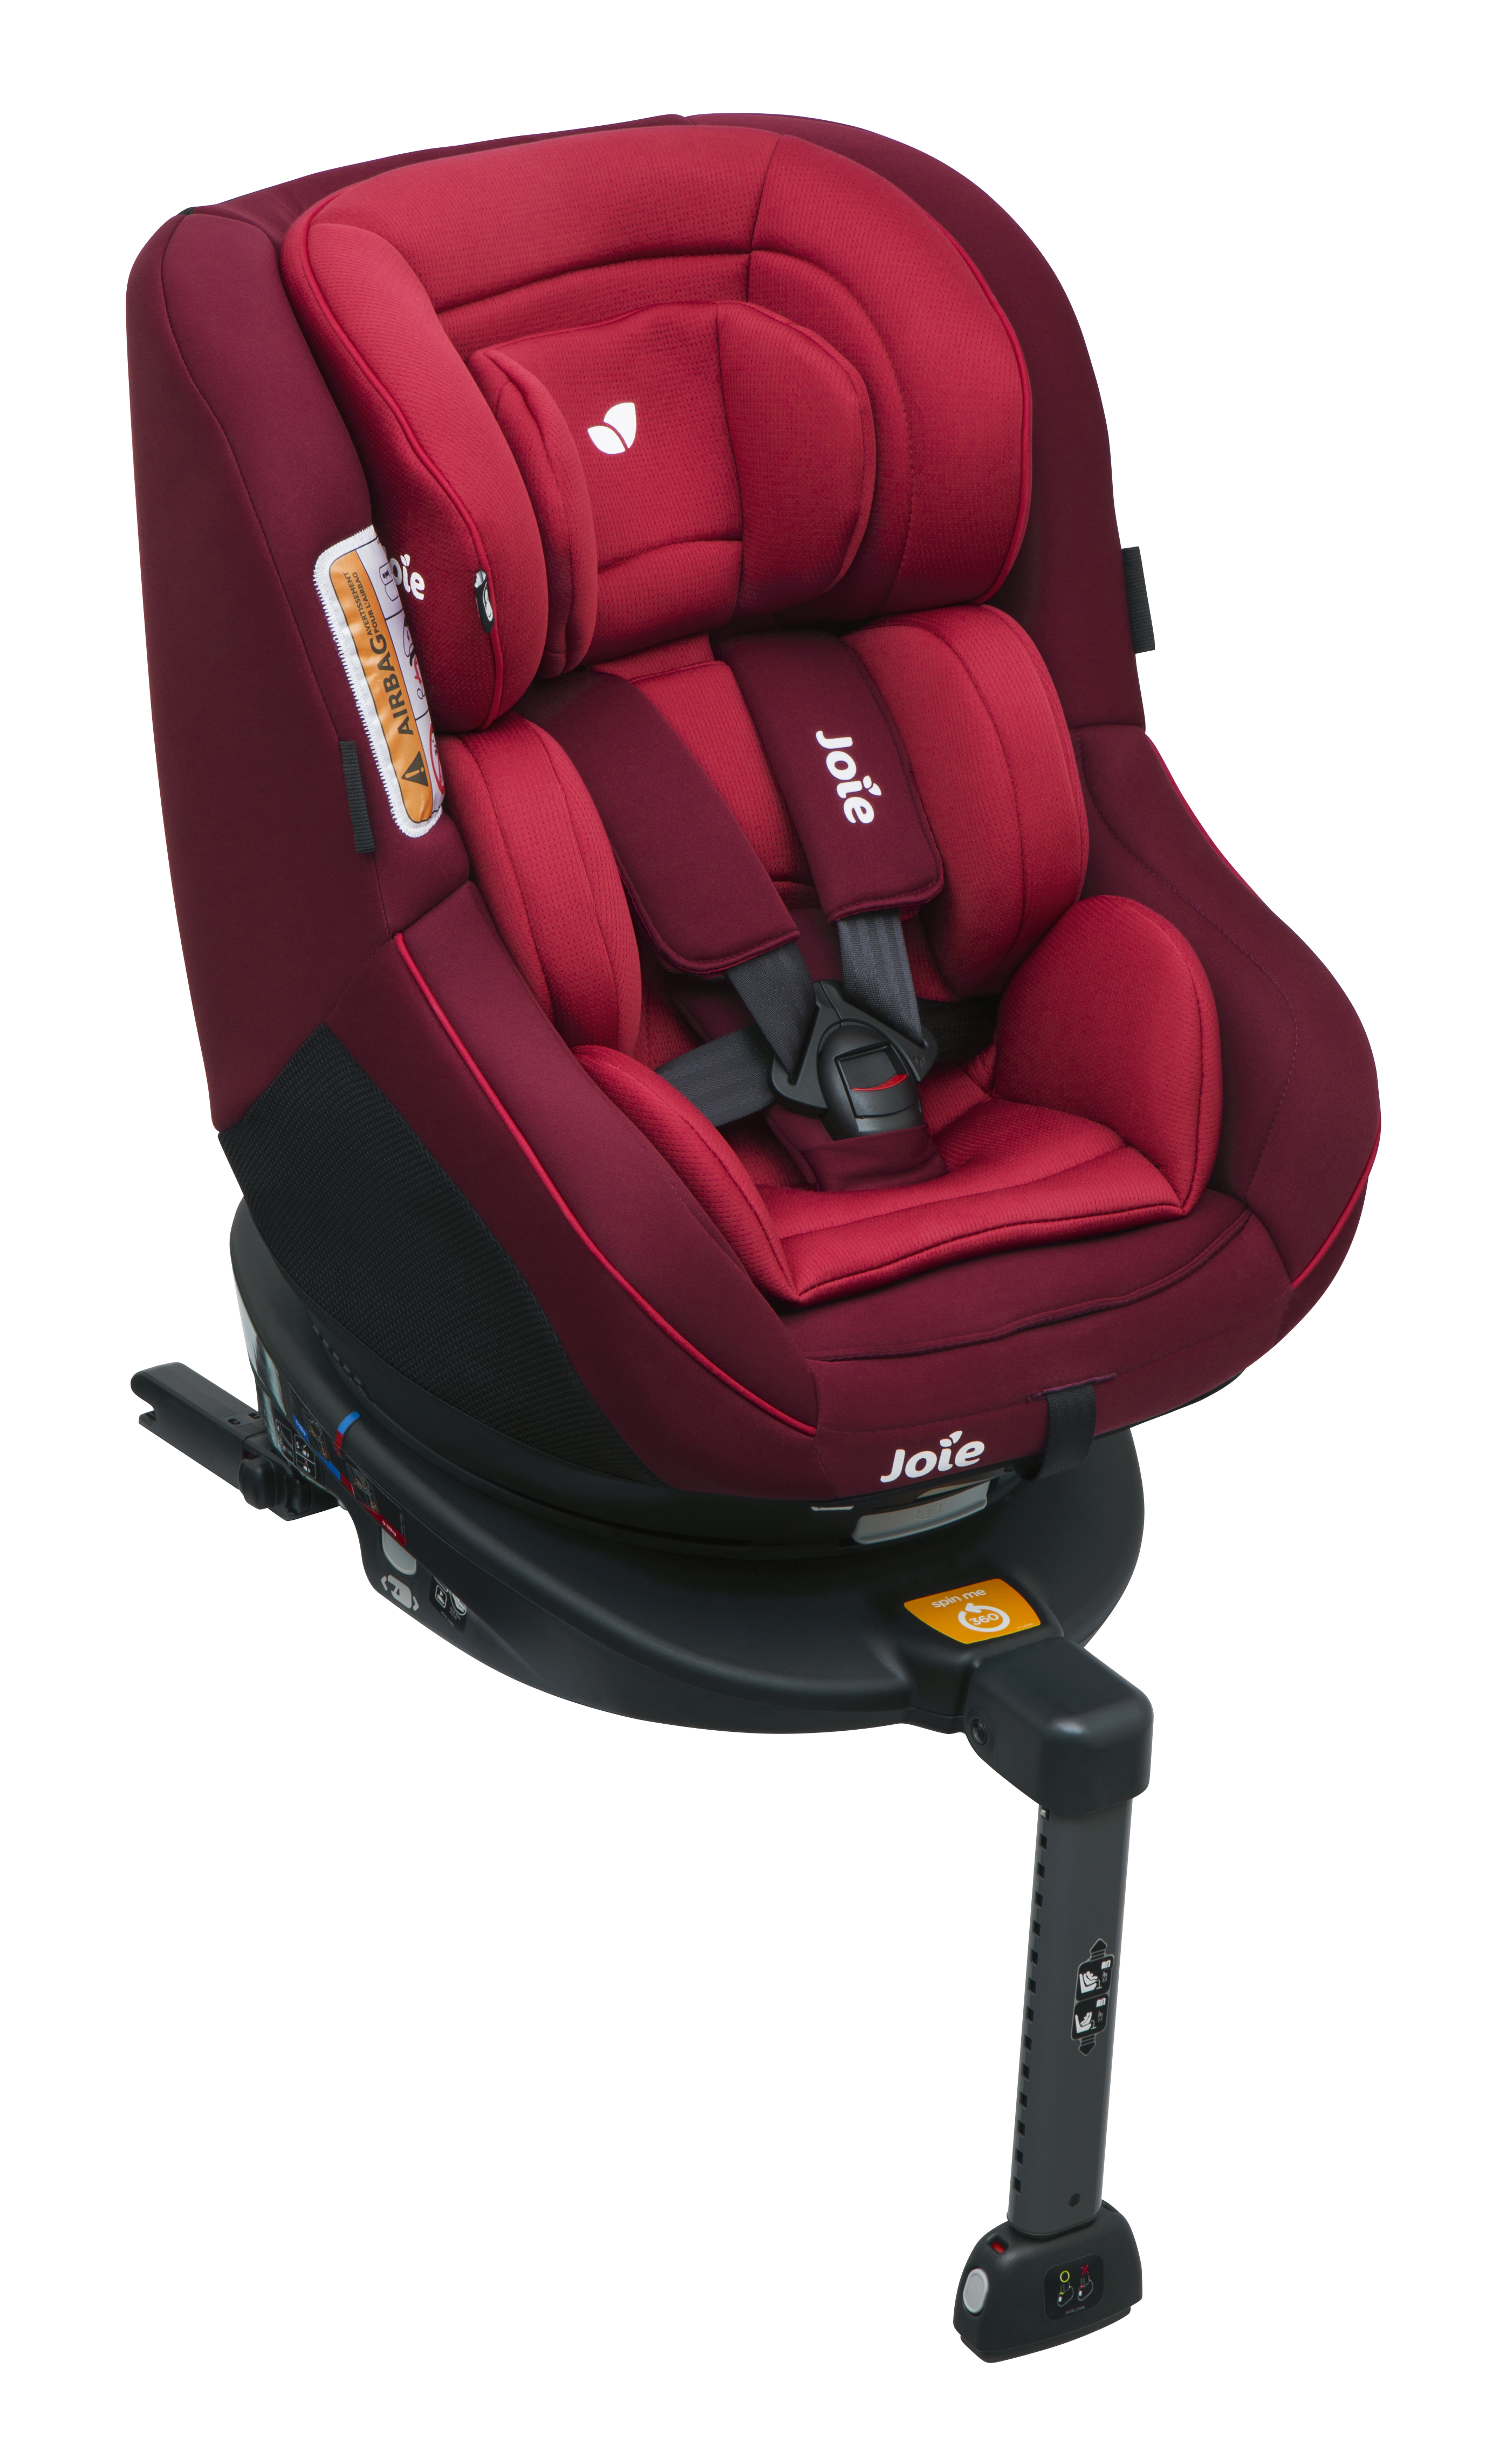 Joie Spin 360 Car Seat (Merlot)